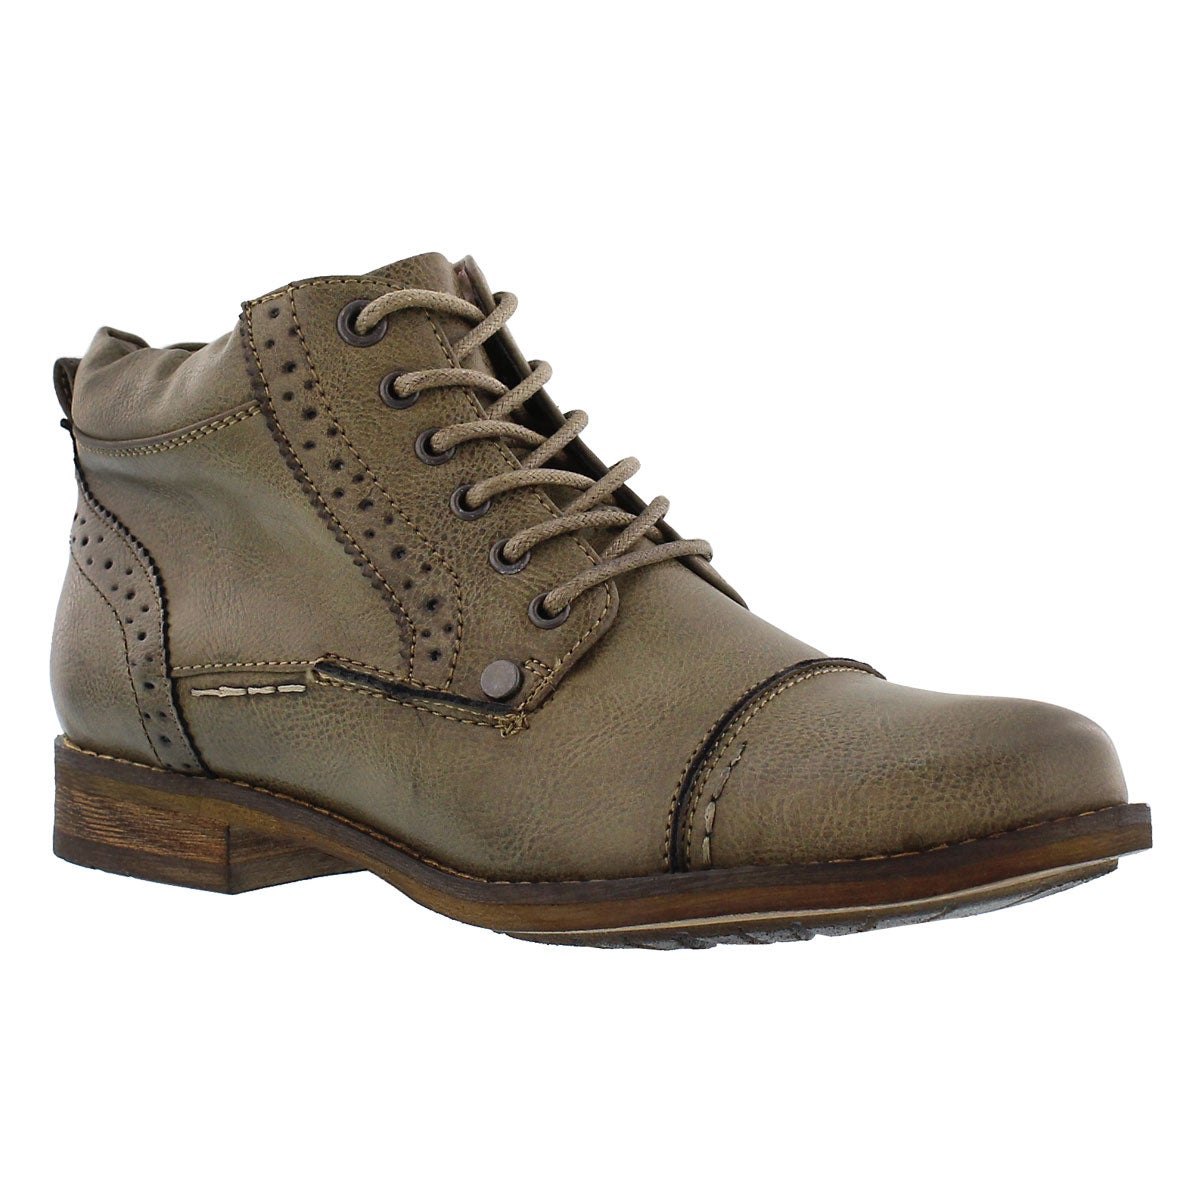 Bottines lacées BELICIA II, taupe, femmes